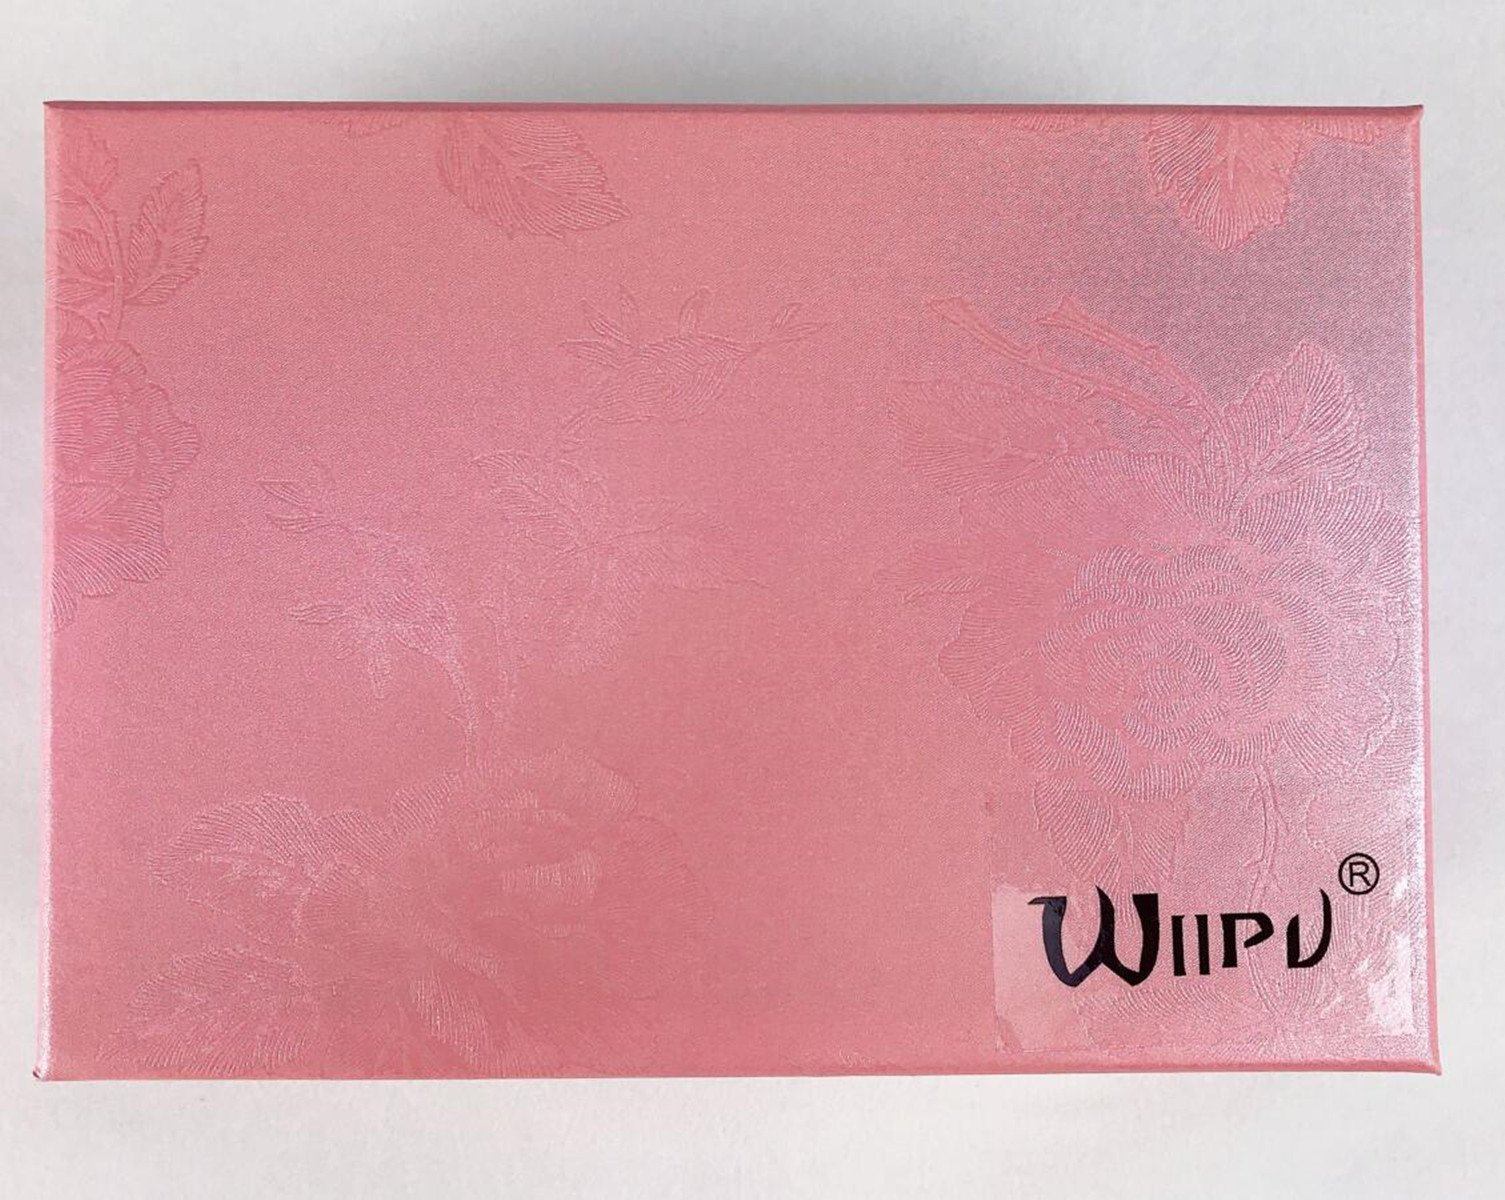 Wiipu 4.6'' High Round Royal Sparkly Rhinestones Tiaras Crowns,5.8'' Diameter(A1367) (Gold) by WIIPU (Image #5)